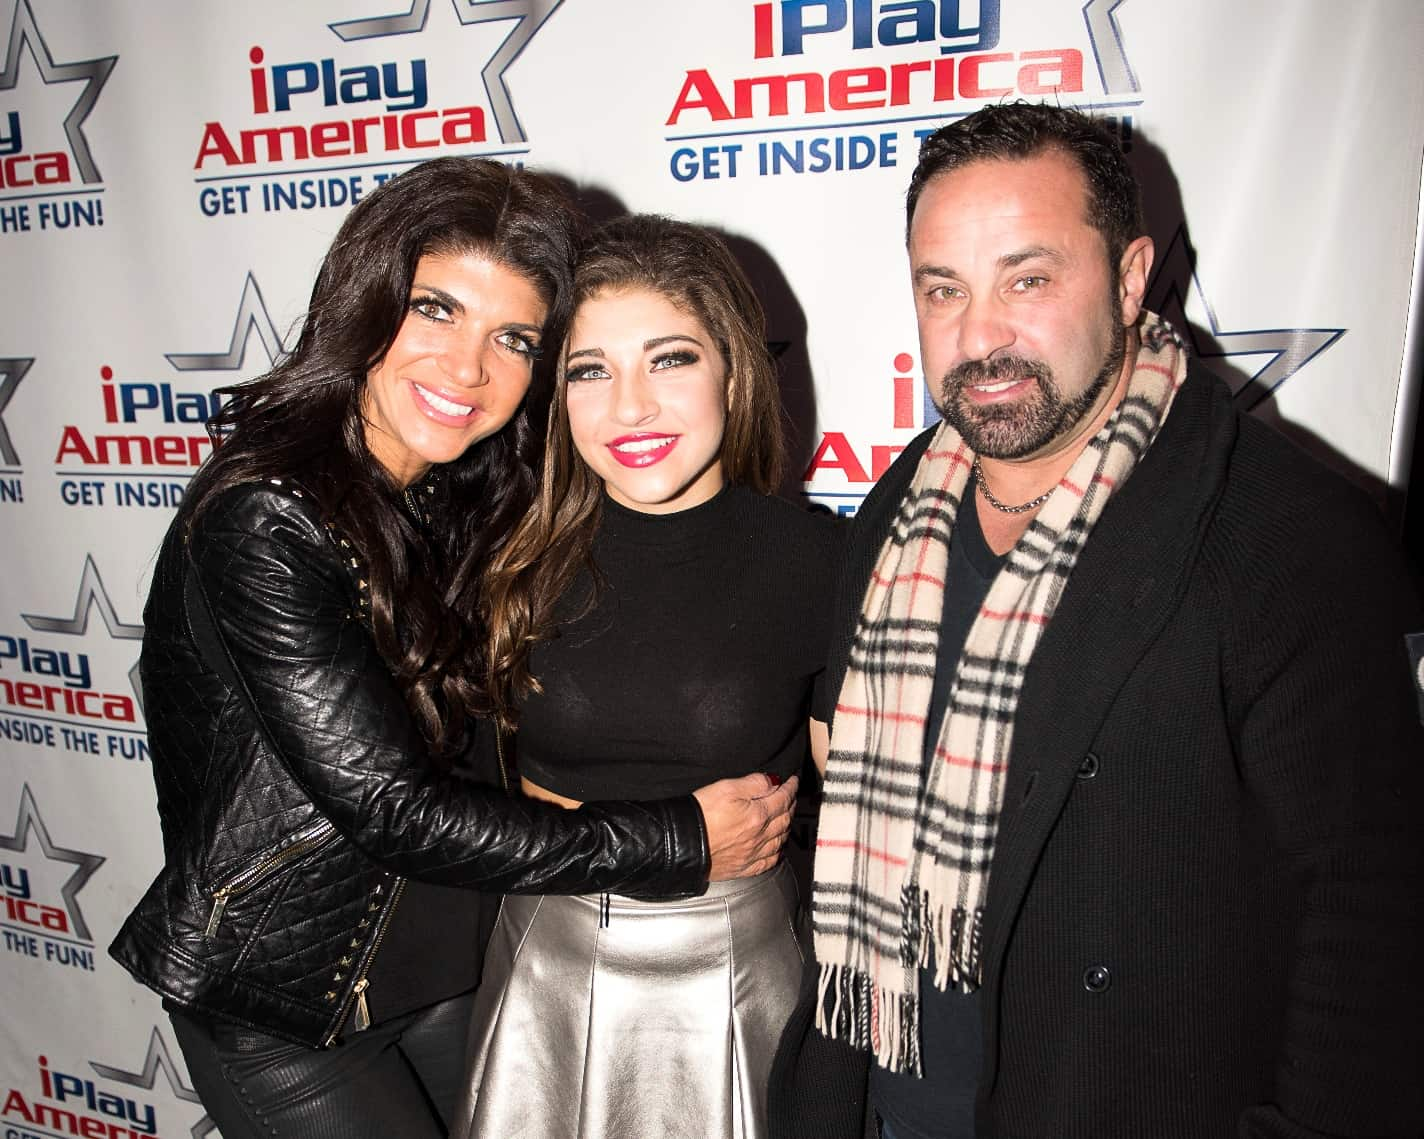 RHONJ's Teresa Giudice and Kids React to Joe Giudice Leaving the Country for Italy, See Their Posts and Plus Update on His Marriage